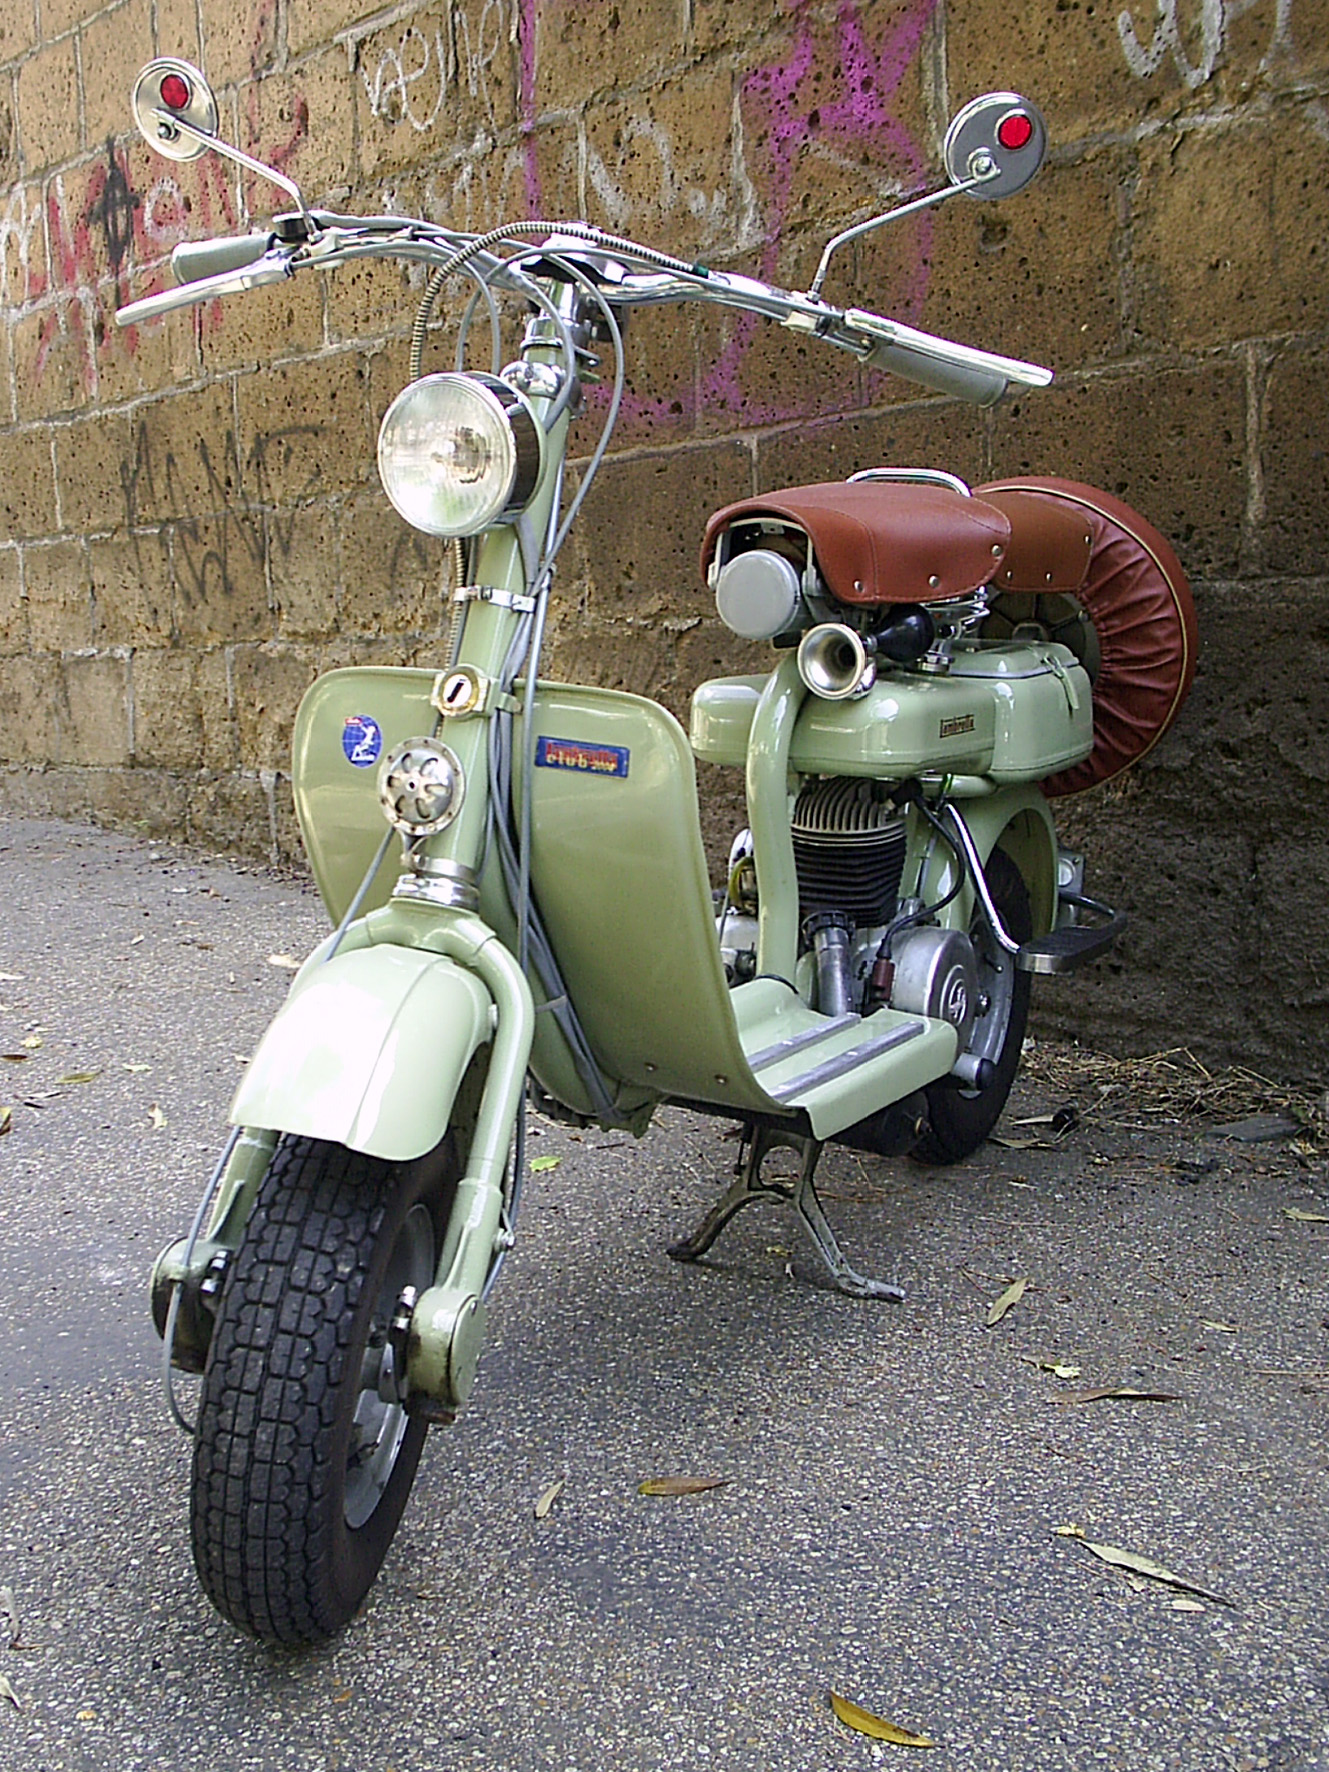 http://upload.wikimedia.org/wikipedia/commons/7/79/Lambretta_125_D_1952_a.jpg